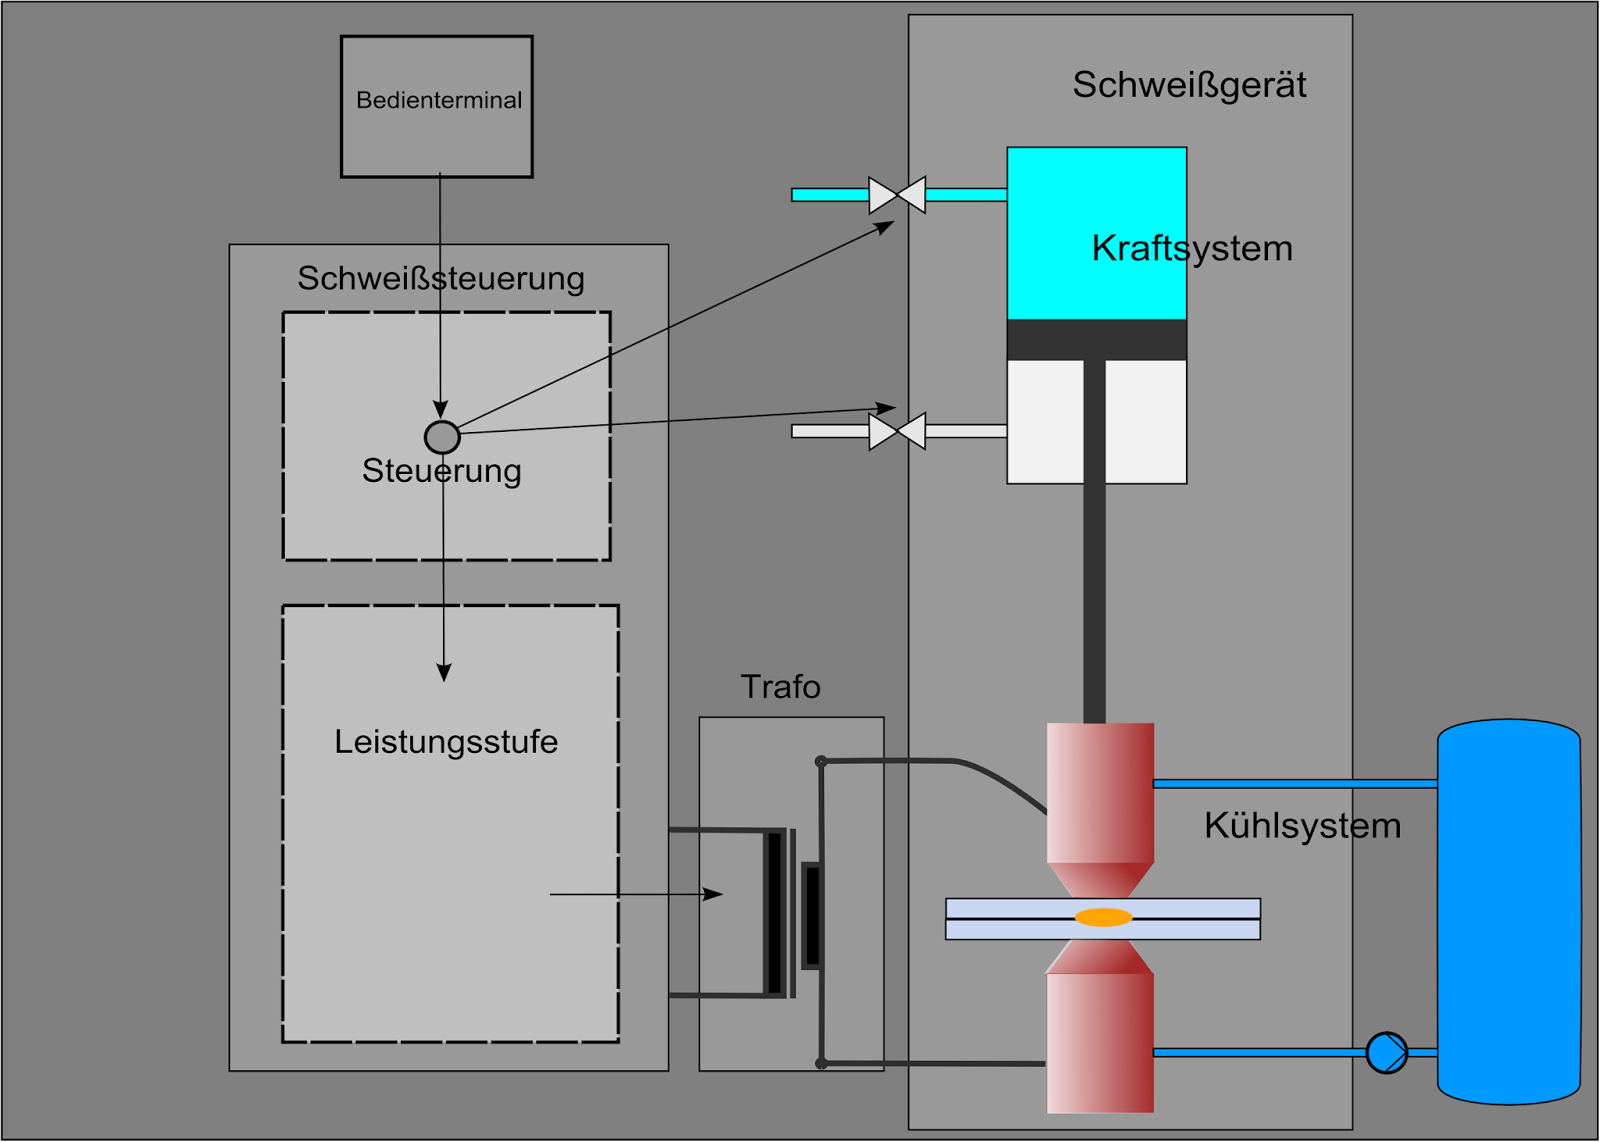 Mech And Tool Engineering Spot Welding Machine Diagram 3 Certain Resistance Process Is Limited Only To Tap Joint It Usee Sheet Metal Whose Thickneee Less Then3mm